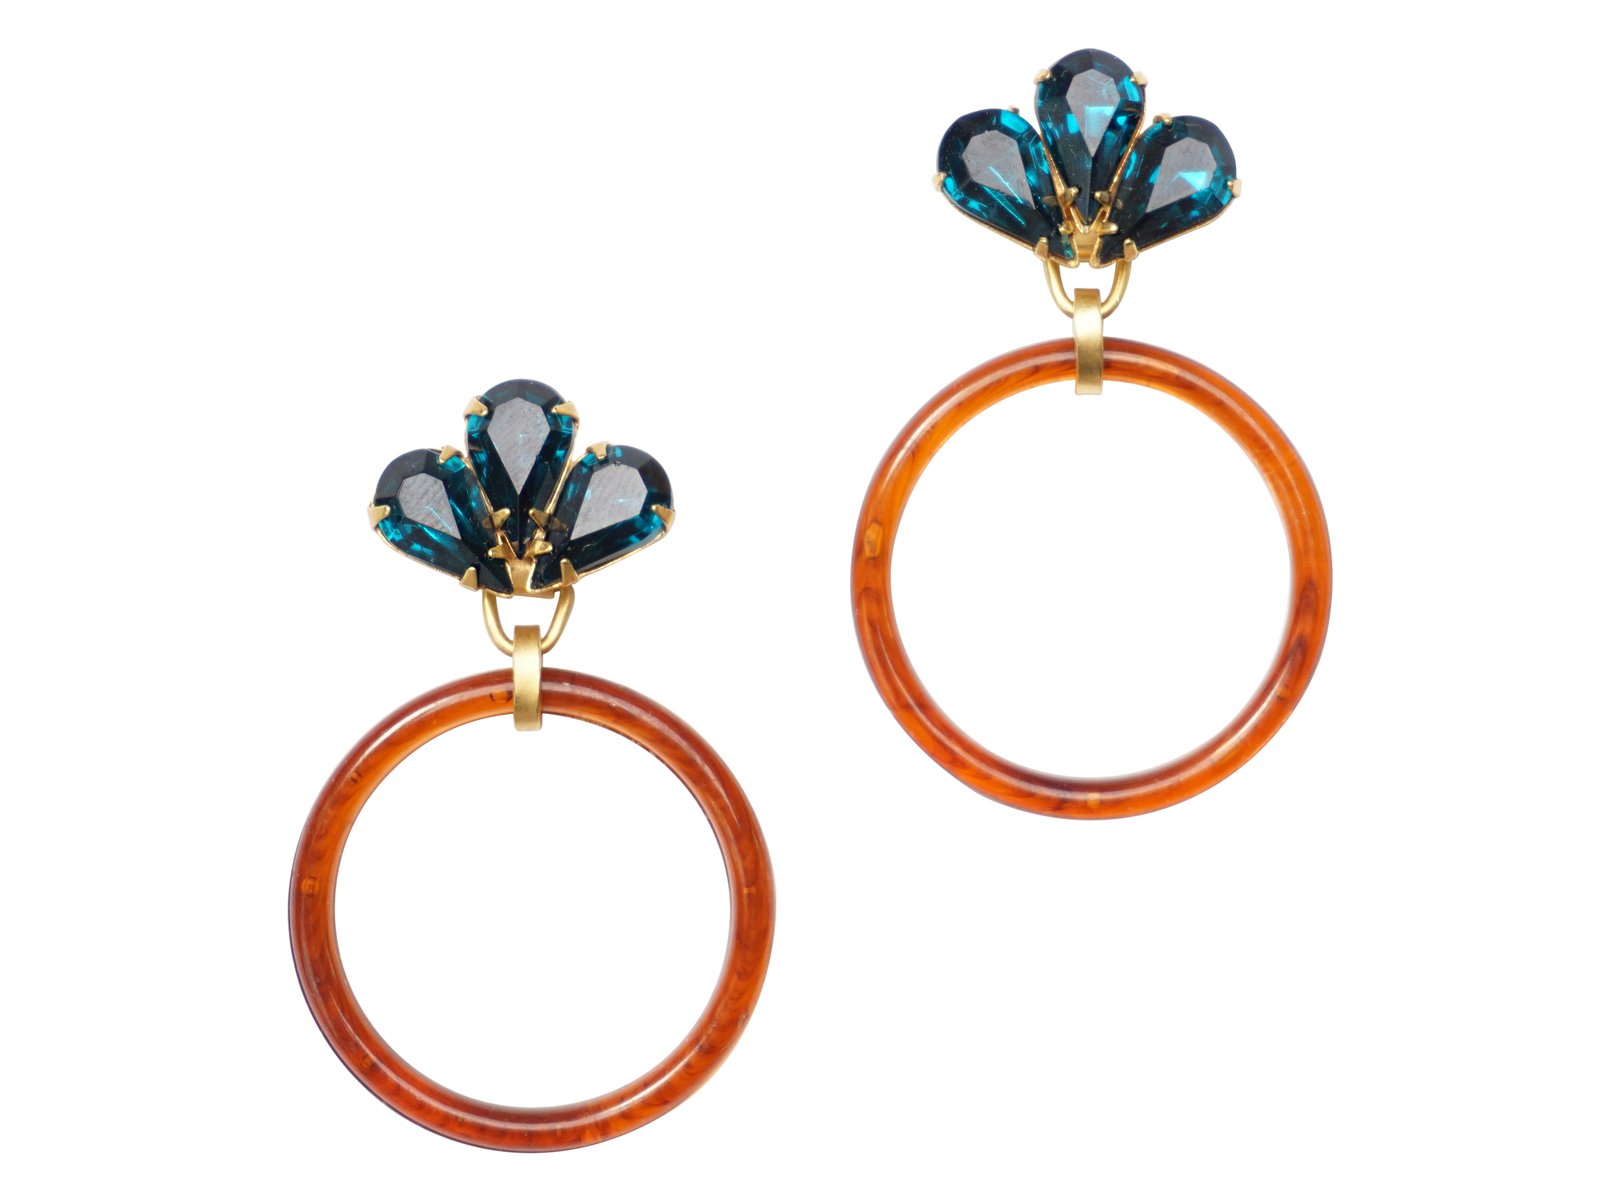 PAIGE TORTOISE HOOP EARRINGS - TEAL